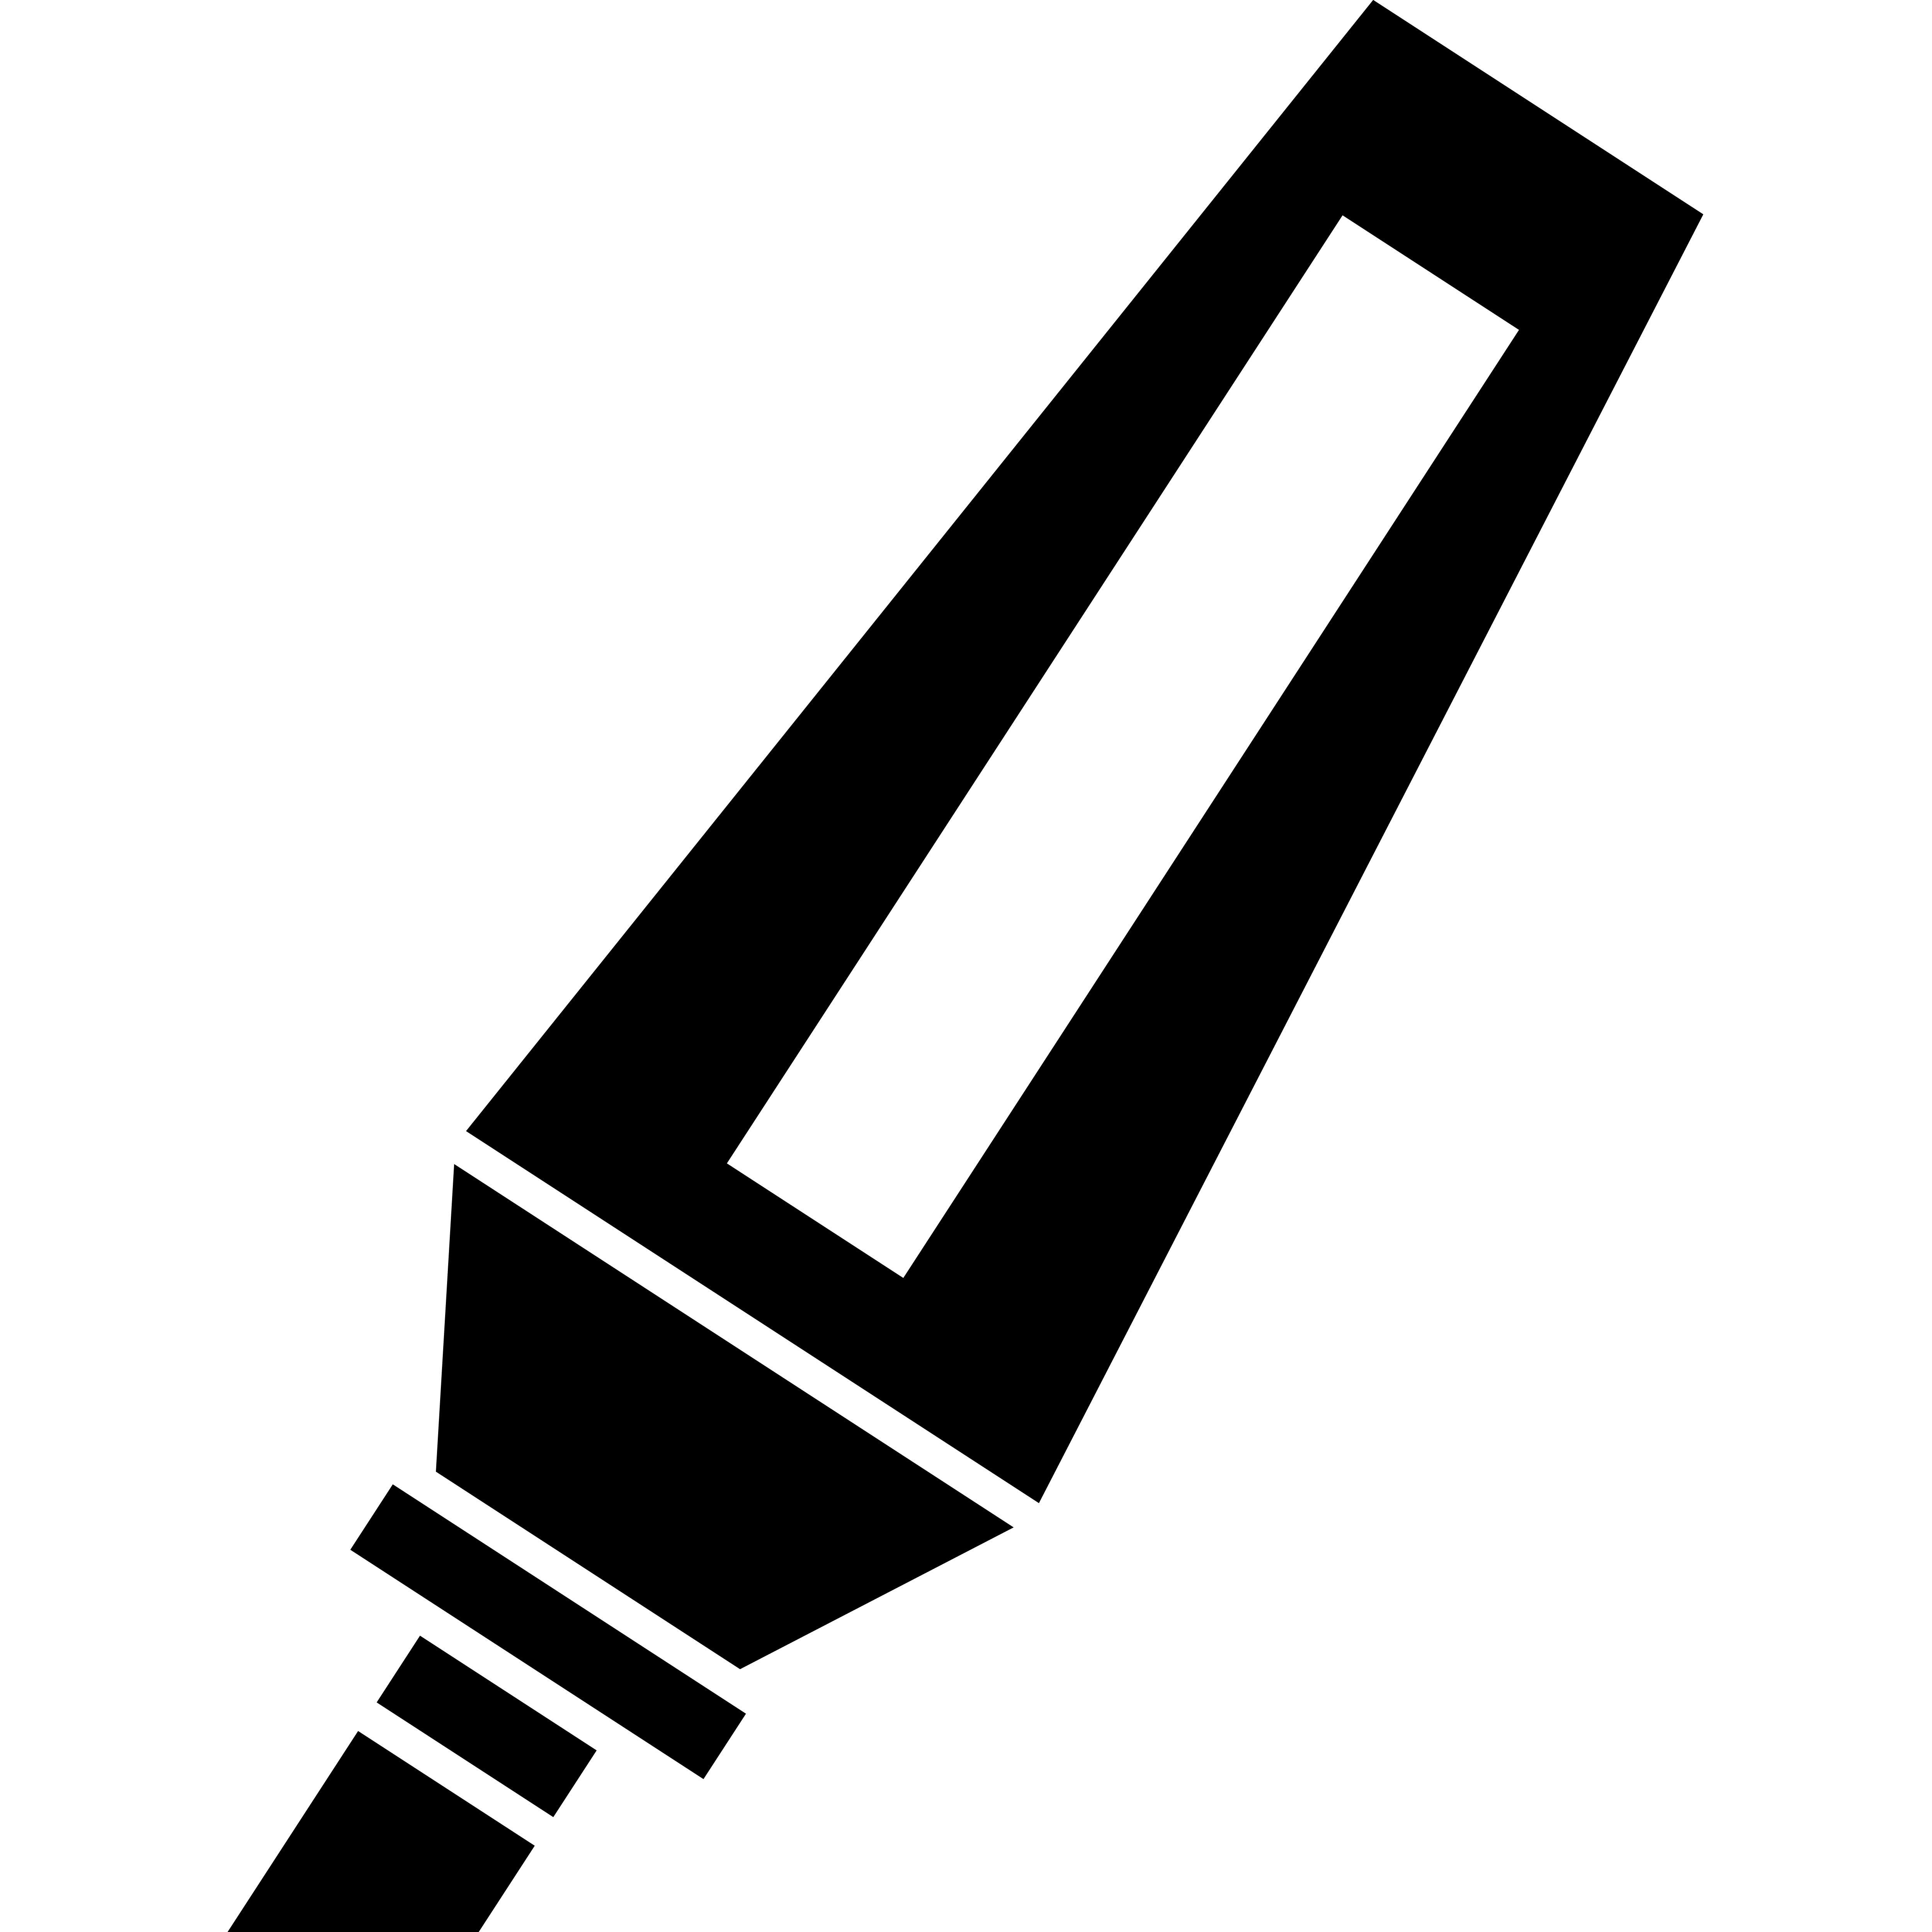 Permanent Marker Free Vector Art.